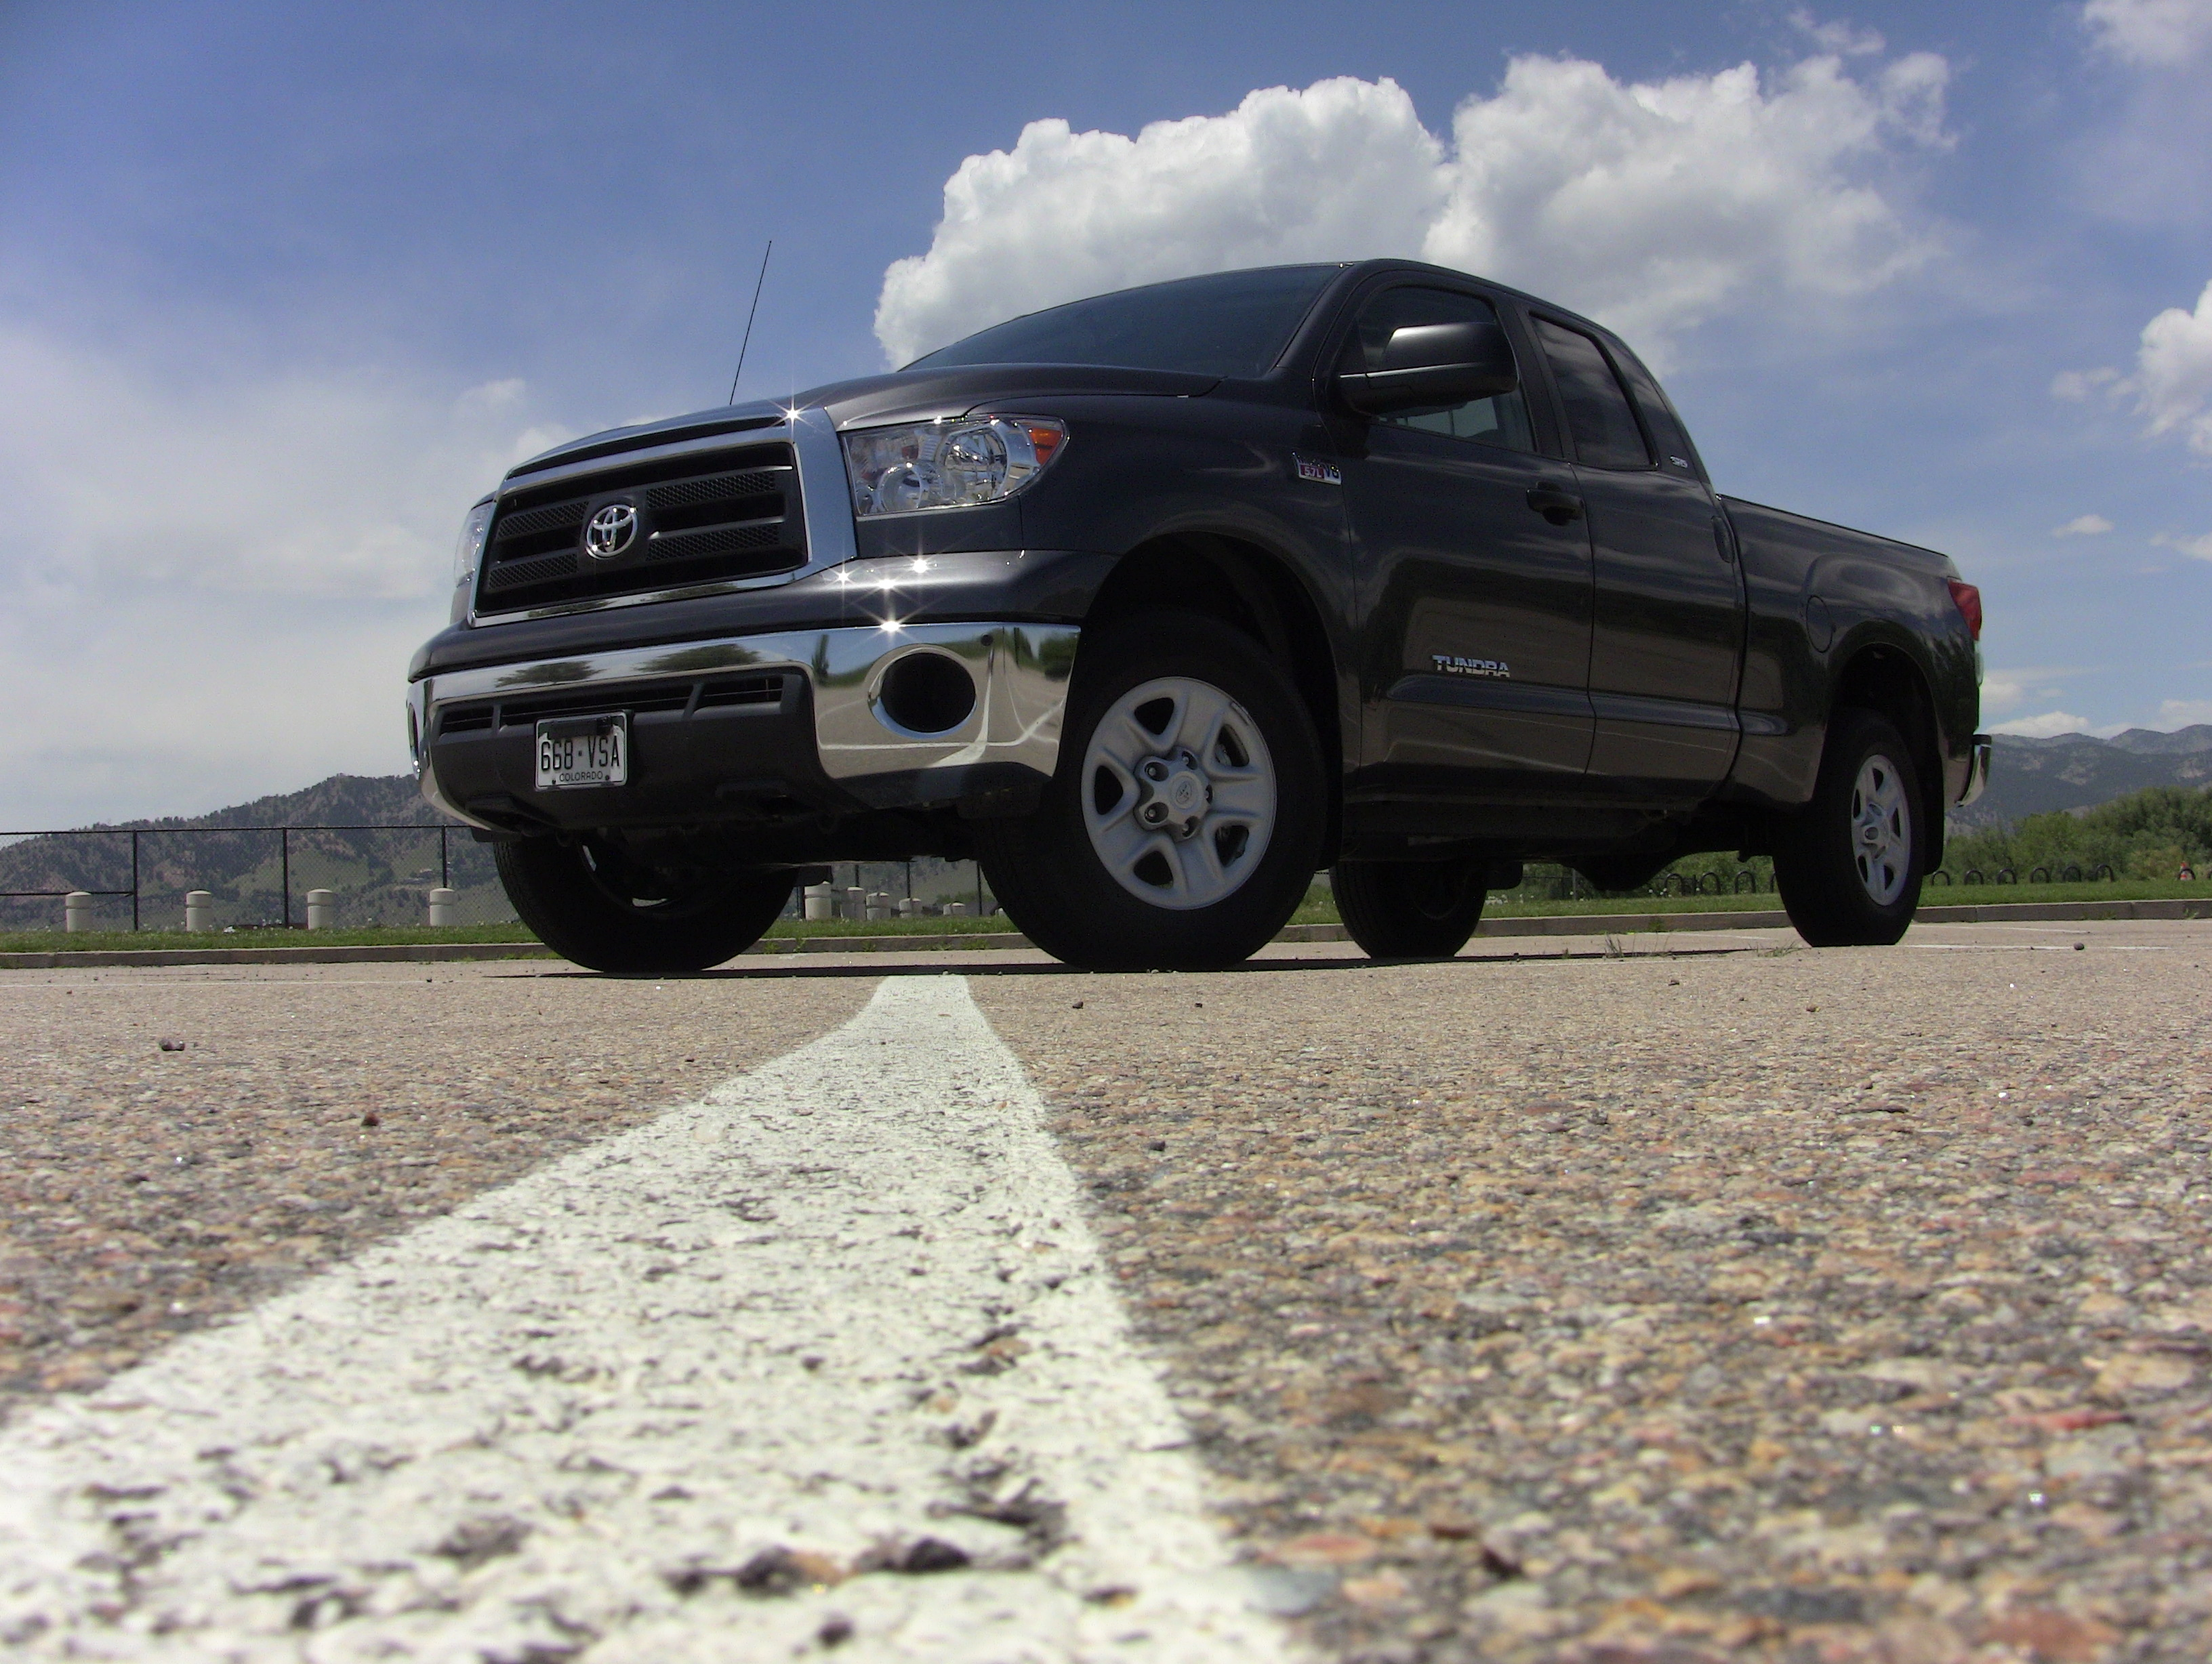 The 2011 Toyota Tundra Is A Full Sized Pick Up Battling It Out In The  Market Place With The Best Selling Ford F 150, The Popular Dodge Ram And  All American ...